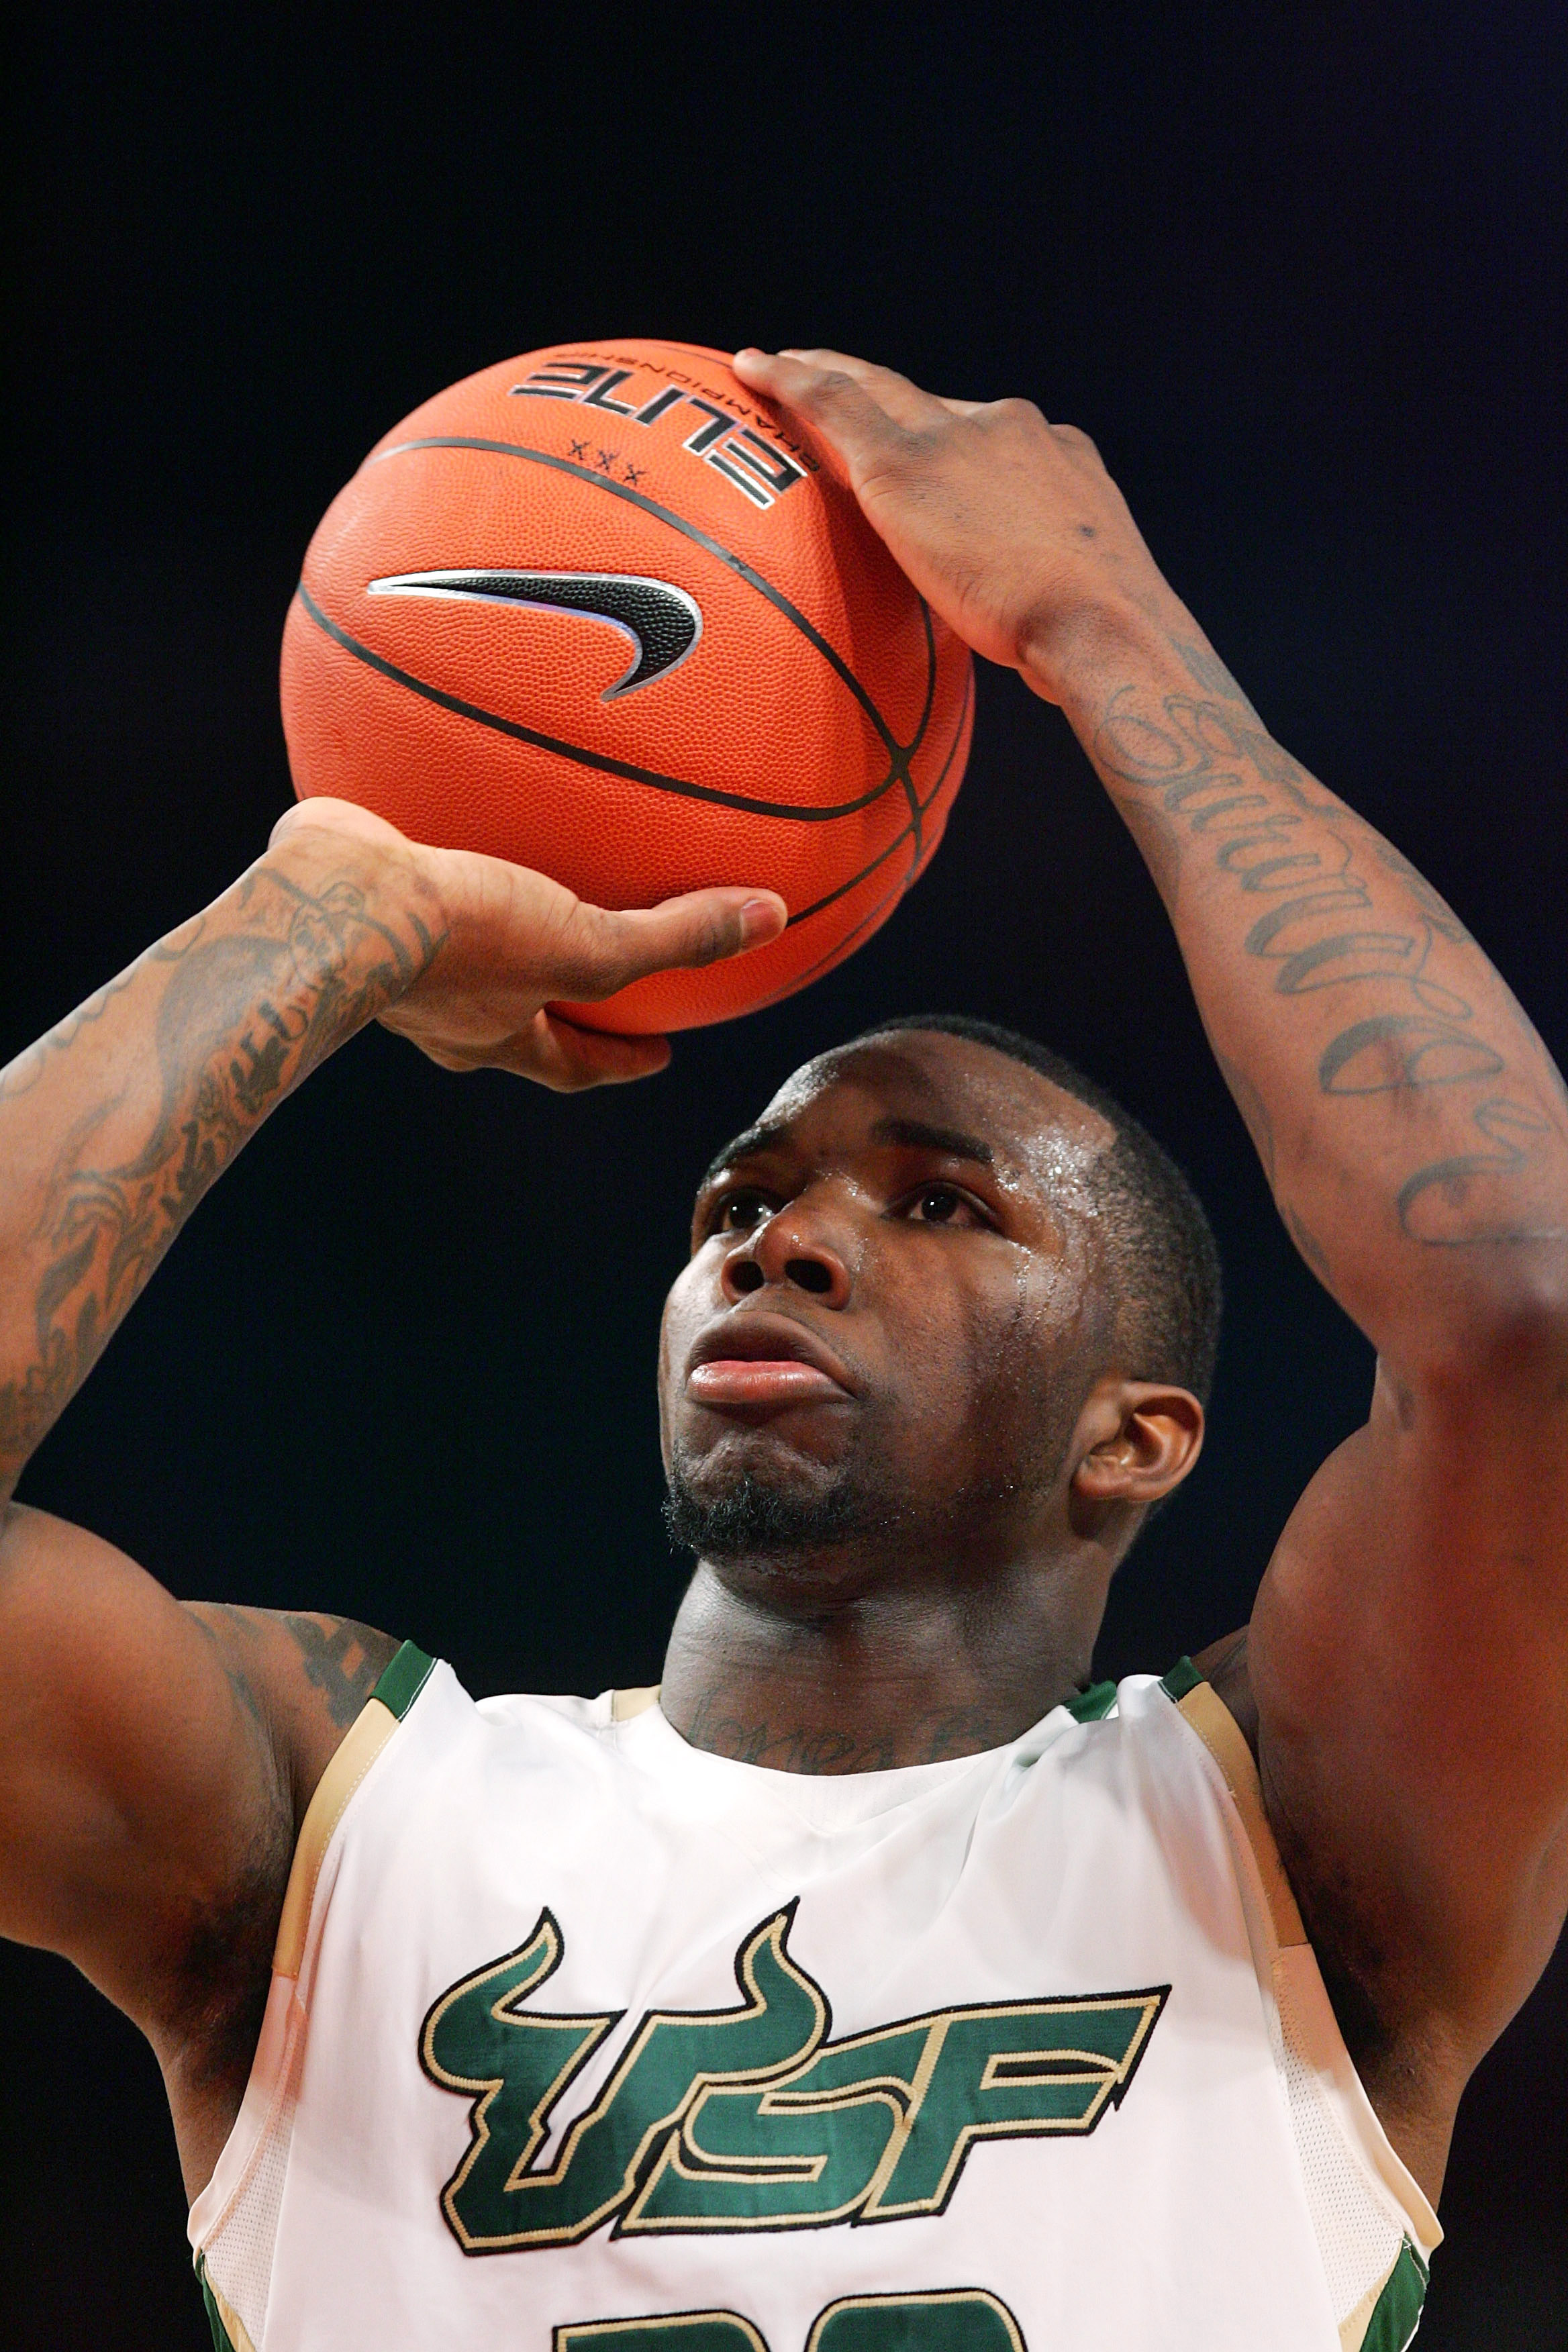 NEW YORK - MARCH 09:  Dominique Jones #20 of the University of South Florida shoots a free throw against DePaul University during the first round game of the Big East Basketball Tournament at Madison Square Garden on March 9, 2010 in New York City.  (Phot